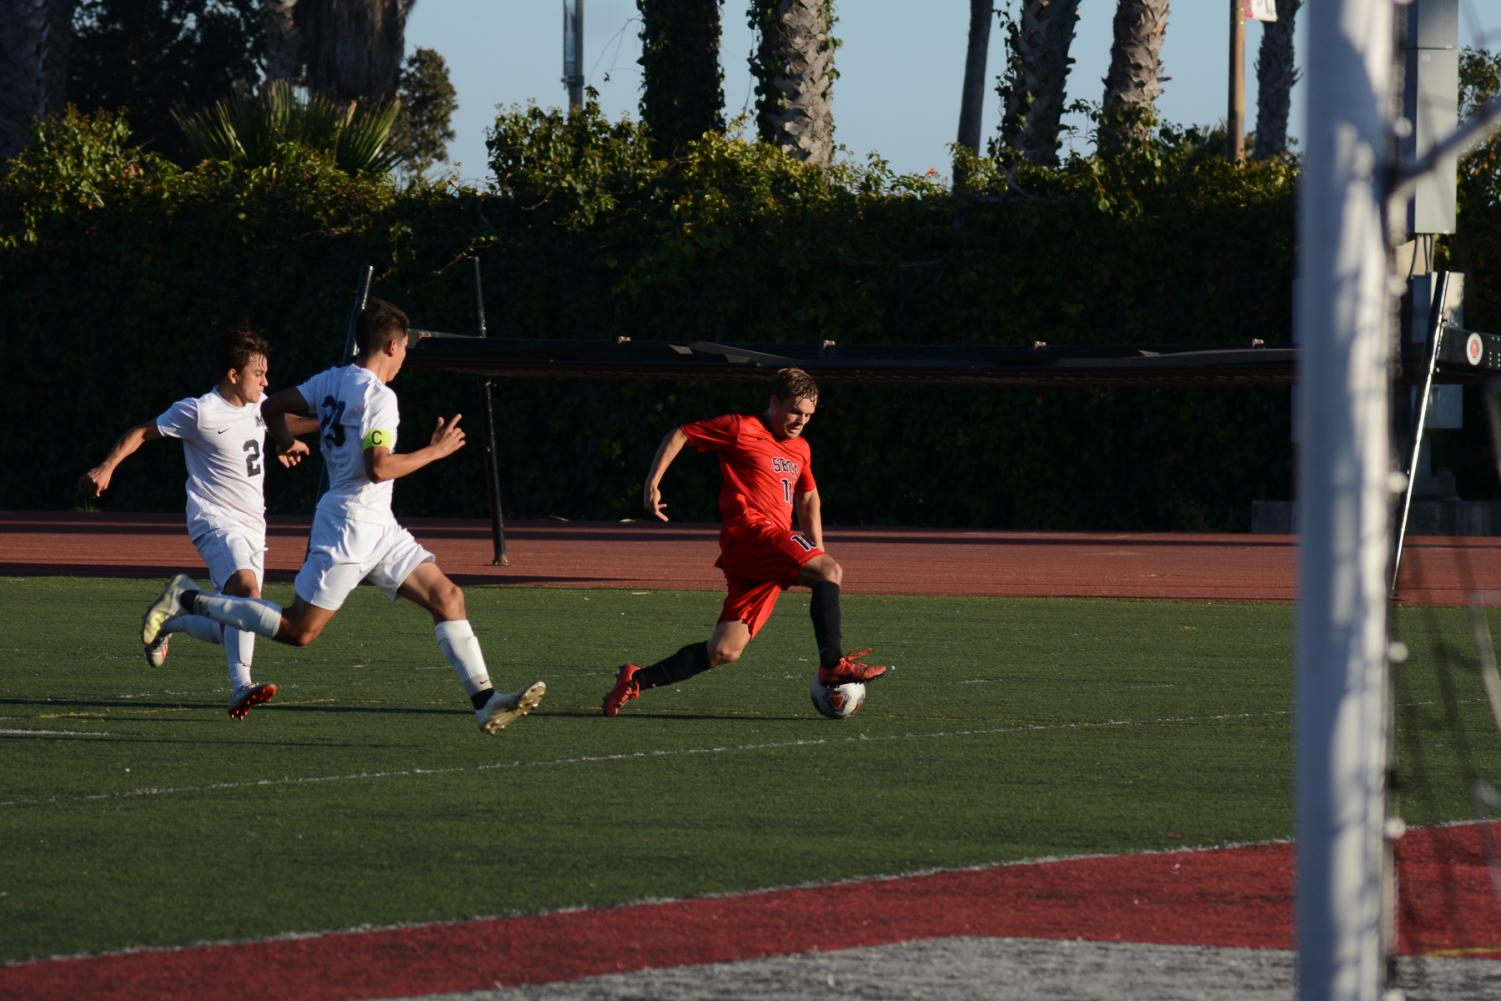 Christopher Robinson (No.10) beats two defenders to charge the goal during the Vaquero's game against Moorpark College on Friday, Nov. 8, 2019, at La Playa Stadium at City College in Santa Barbara, Calif. The Vaqueros won the game 2-1.